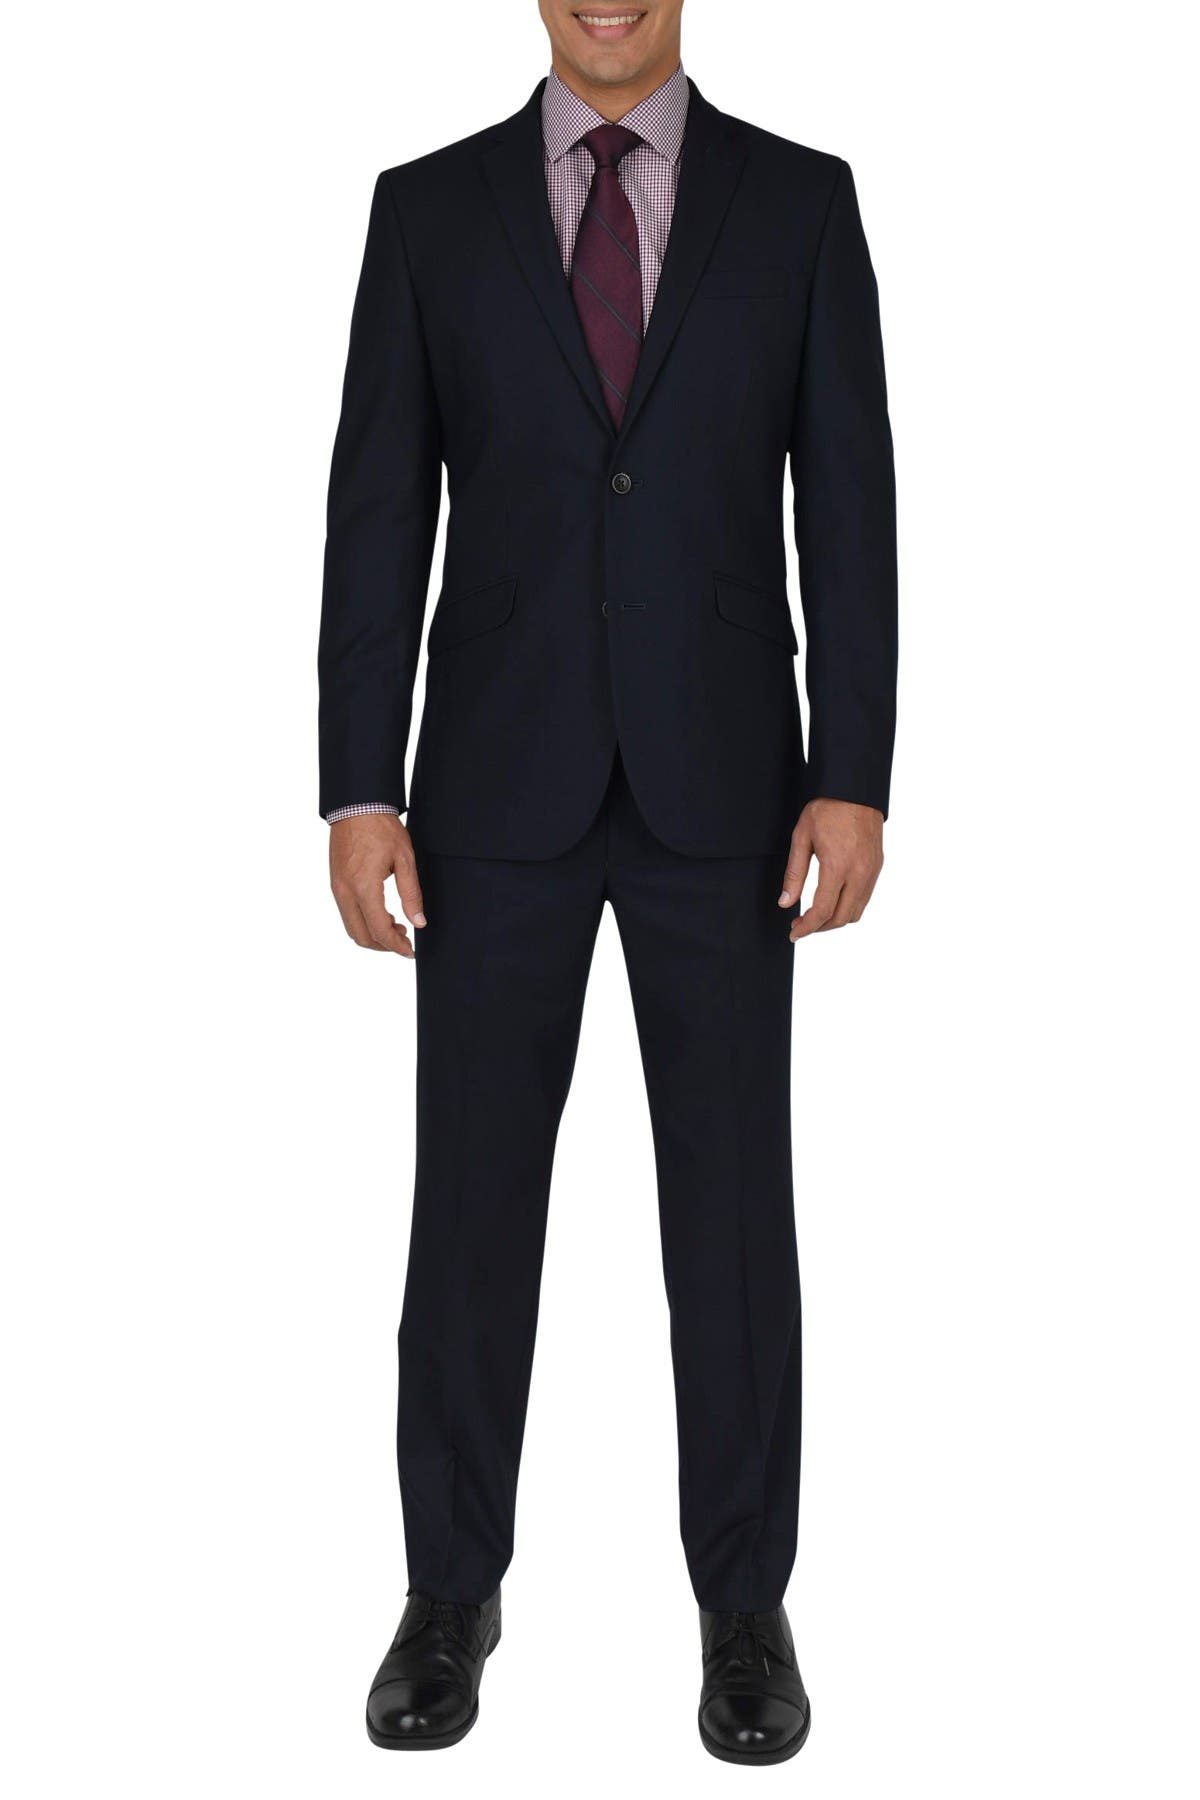 Image of Kenneth Cole Reaction Navy Shadow Check Two Button Notch Lapel Slim Fit Suit